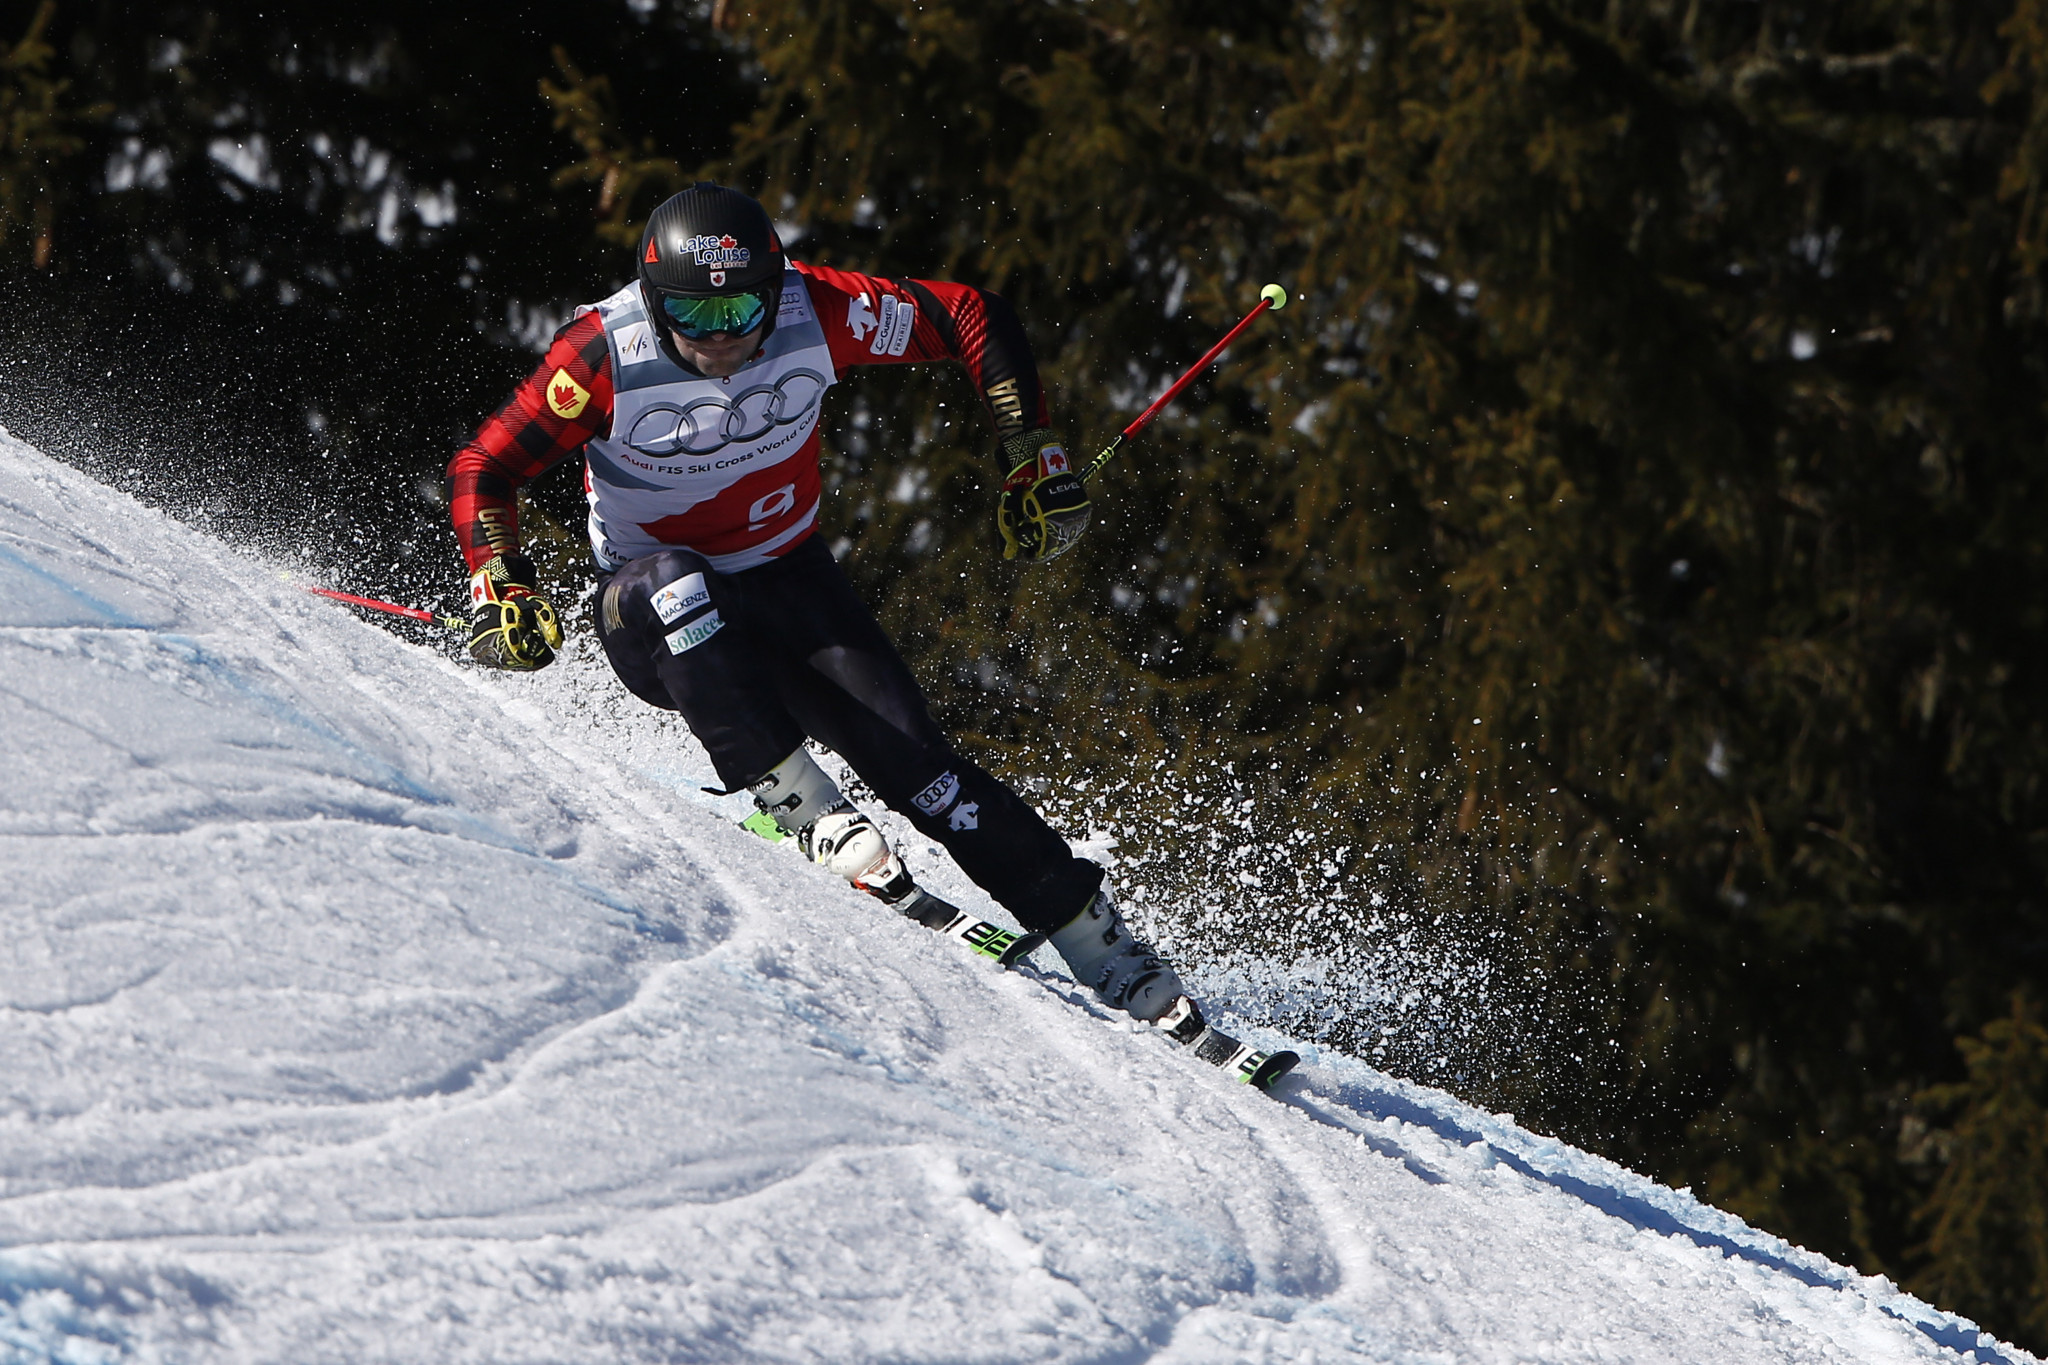 Olympic champion Leman and Kennedy-Sim fastest in Ski Cross World Cup qualifying in Arosa